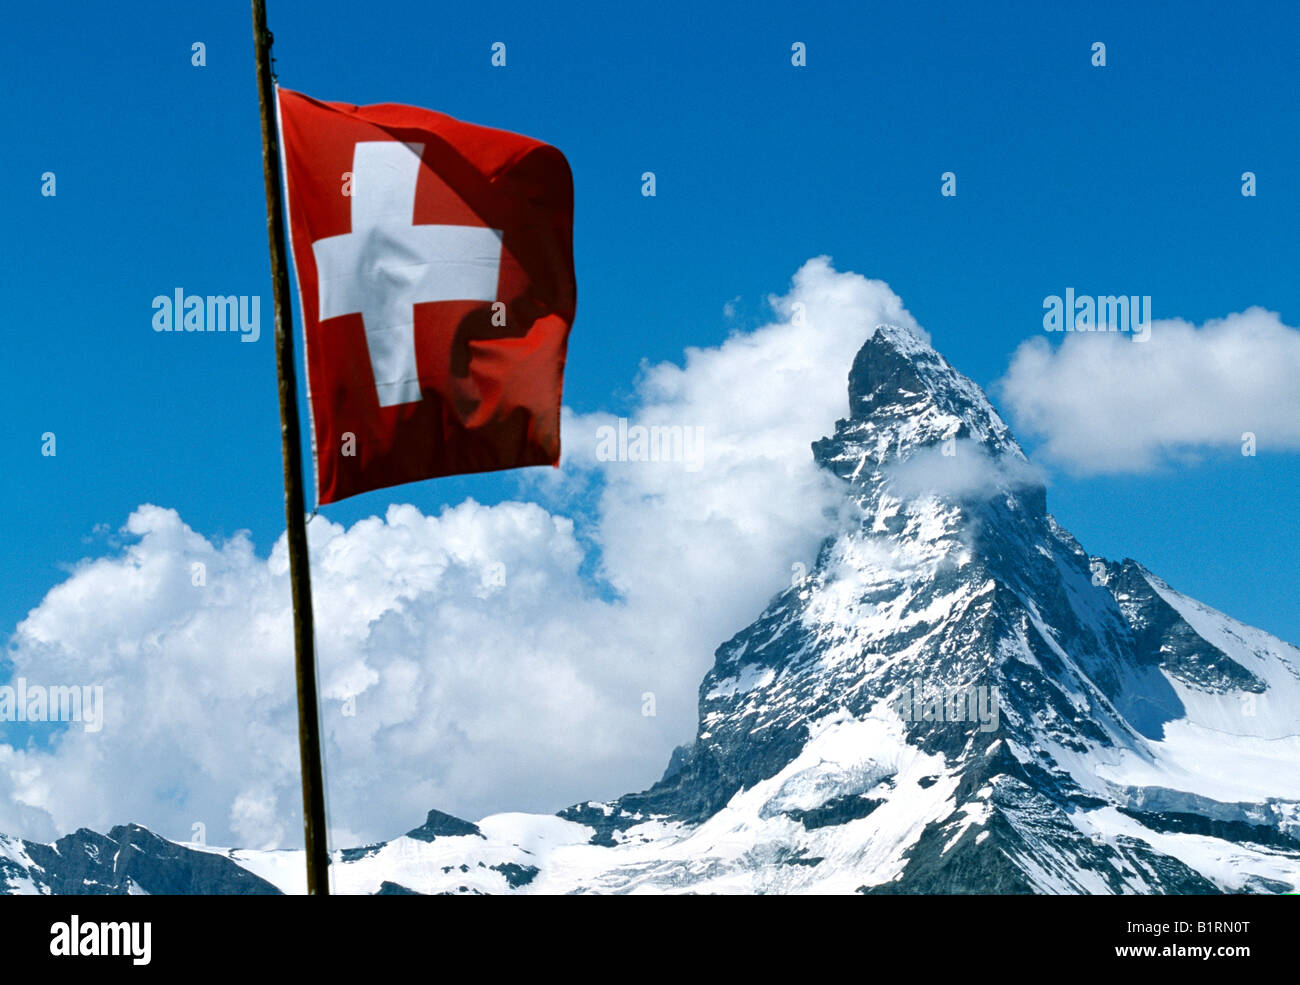 Swiss flag, Matterhorn, Wallis, Switzerland - Stock Image